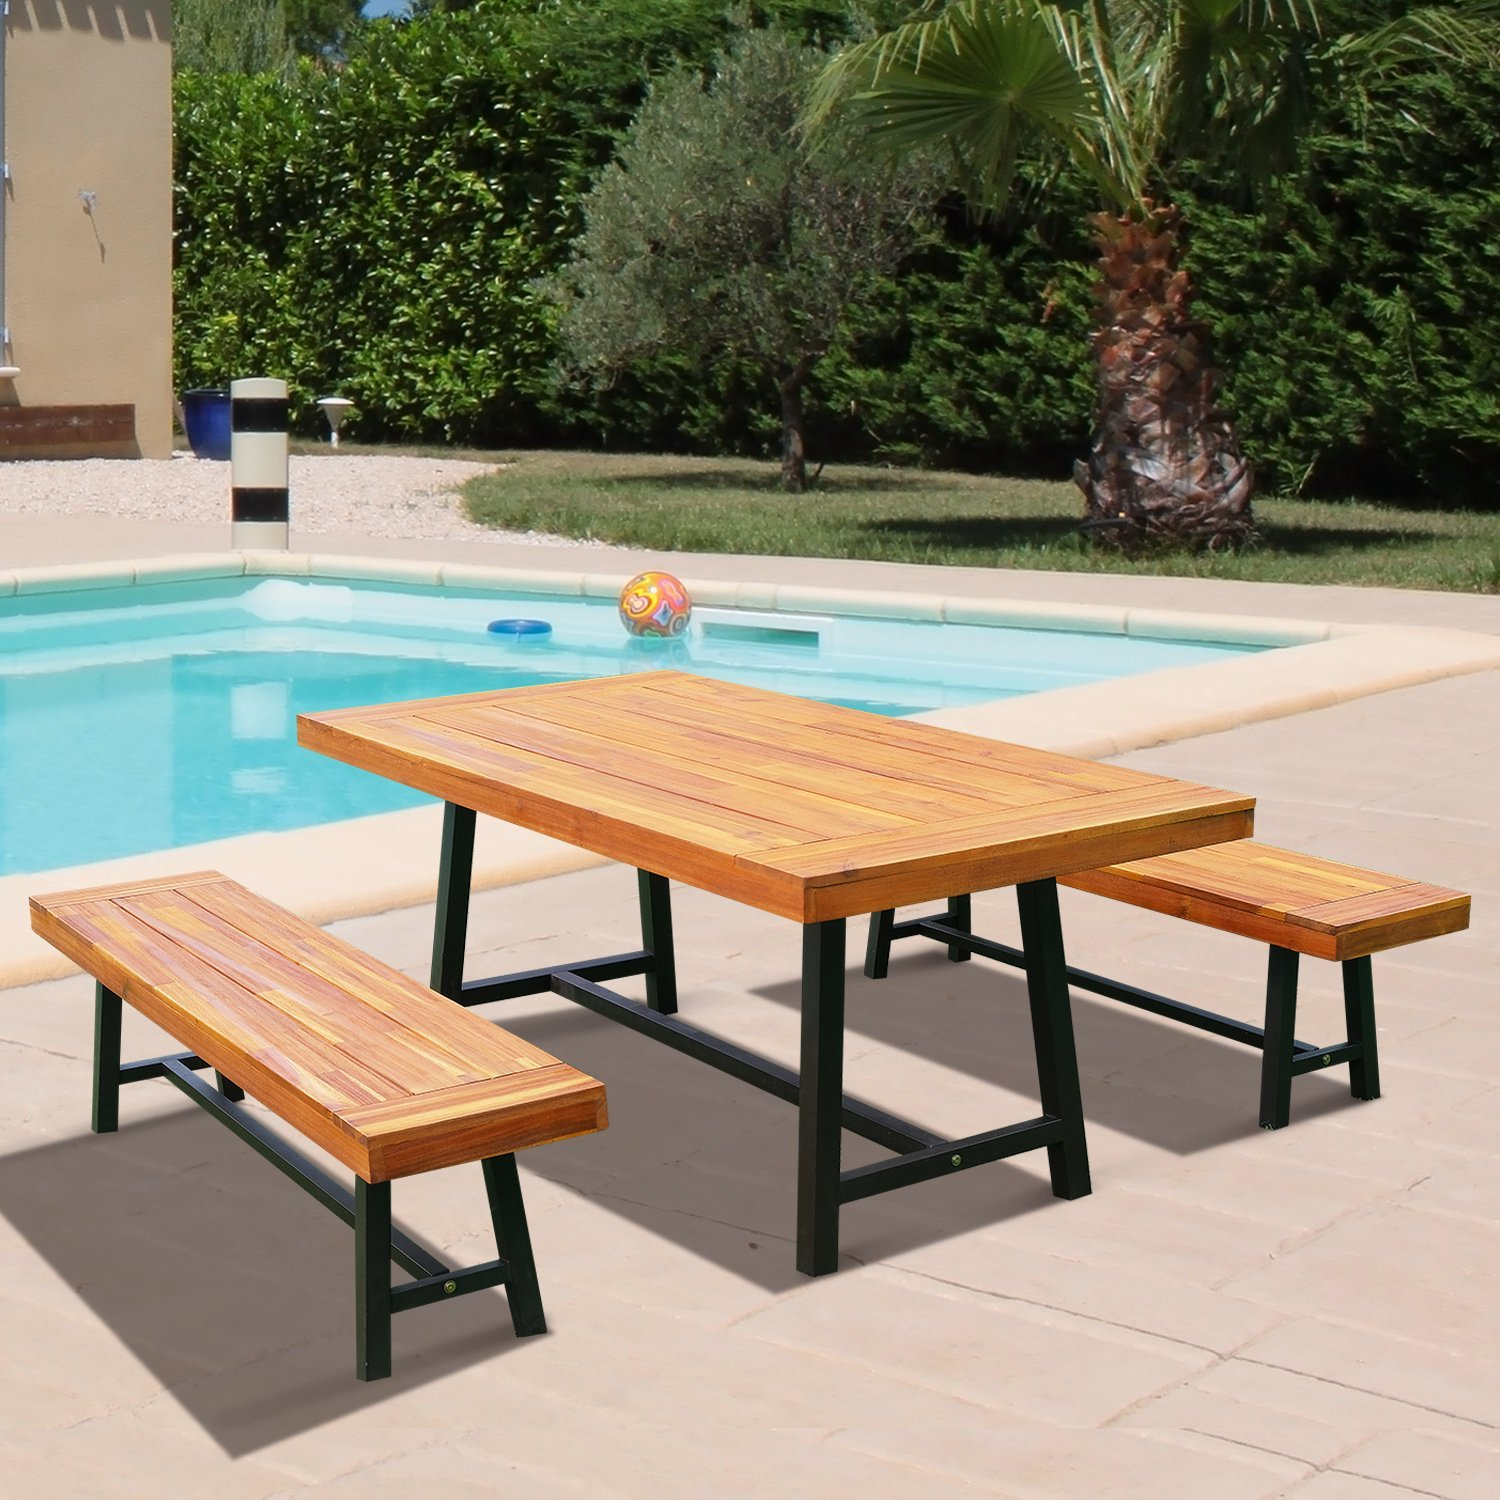 Outsunny 71'' Rustic Acacia Wood Outdoor Picnic Table and 63 Bench Seat Set Natural Red Wood